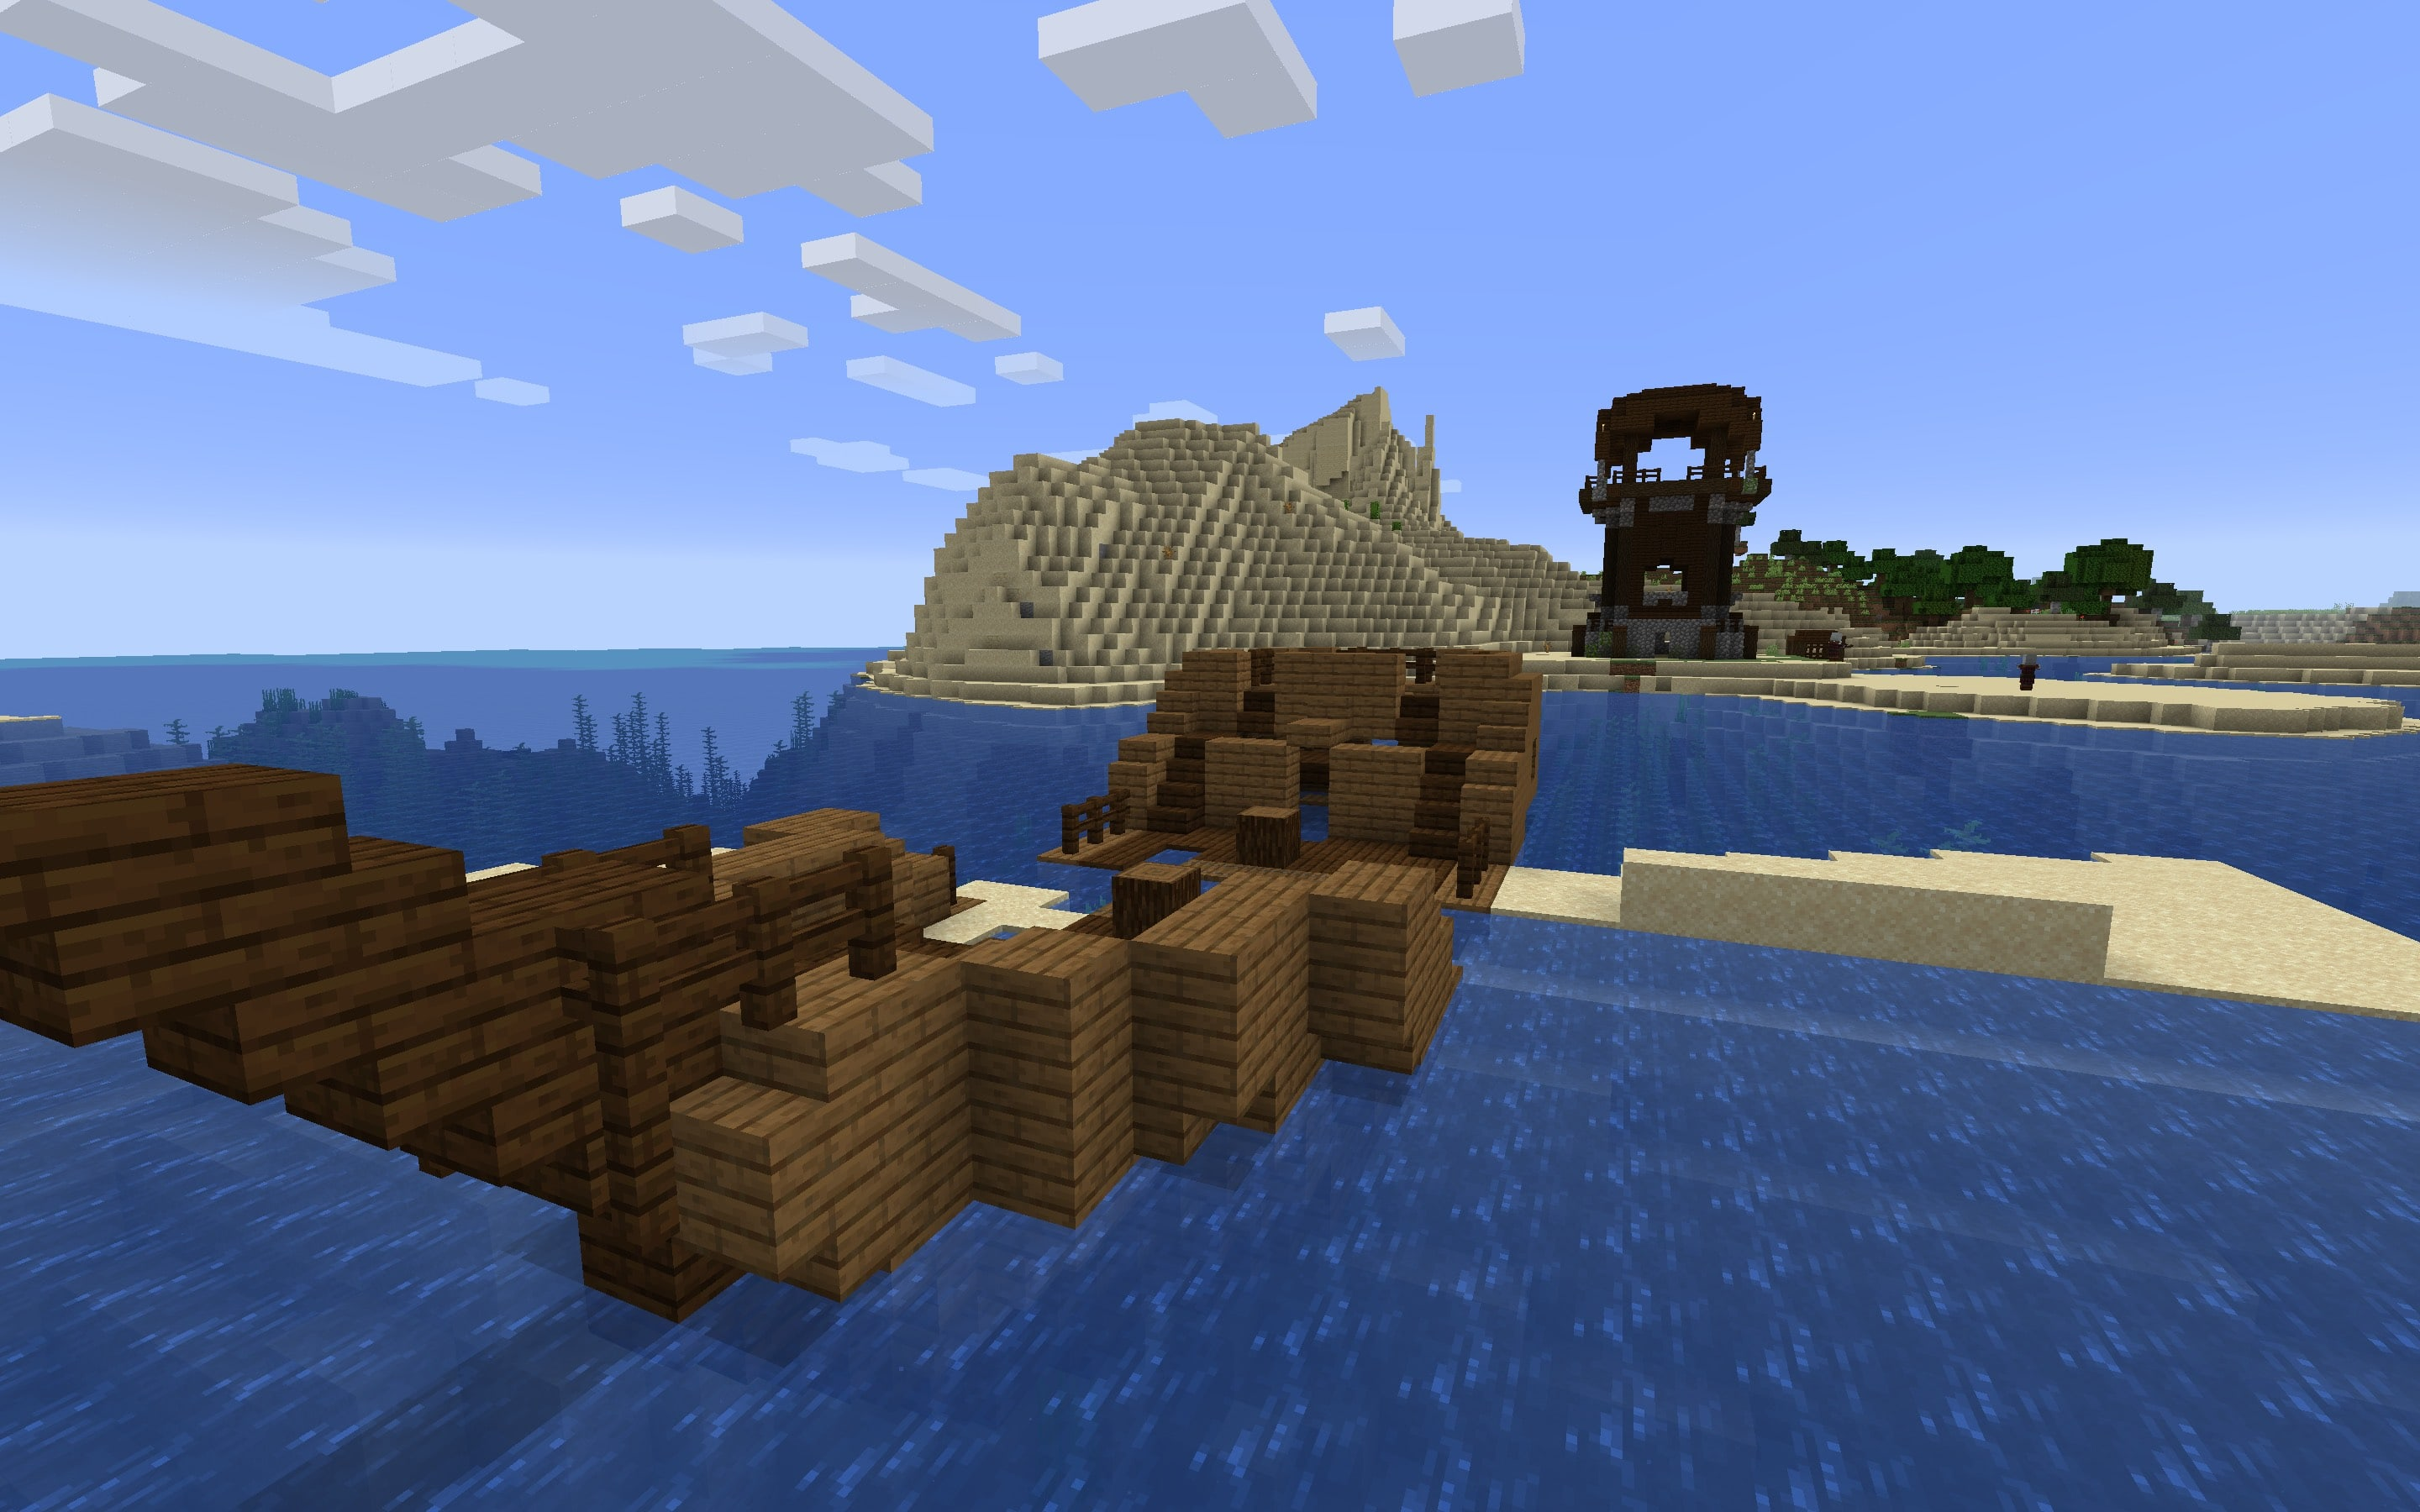 Minecraft Seed - Shipwreck and Pillager Outpost